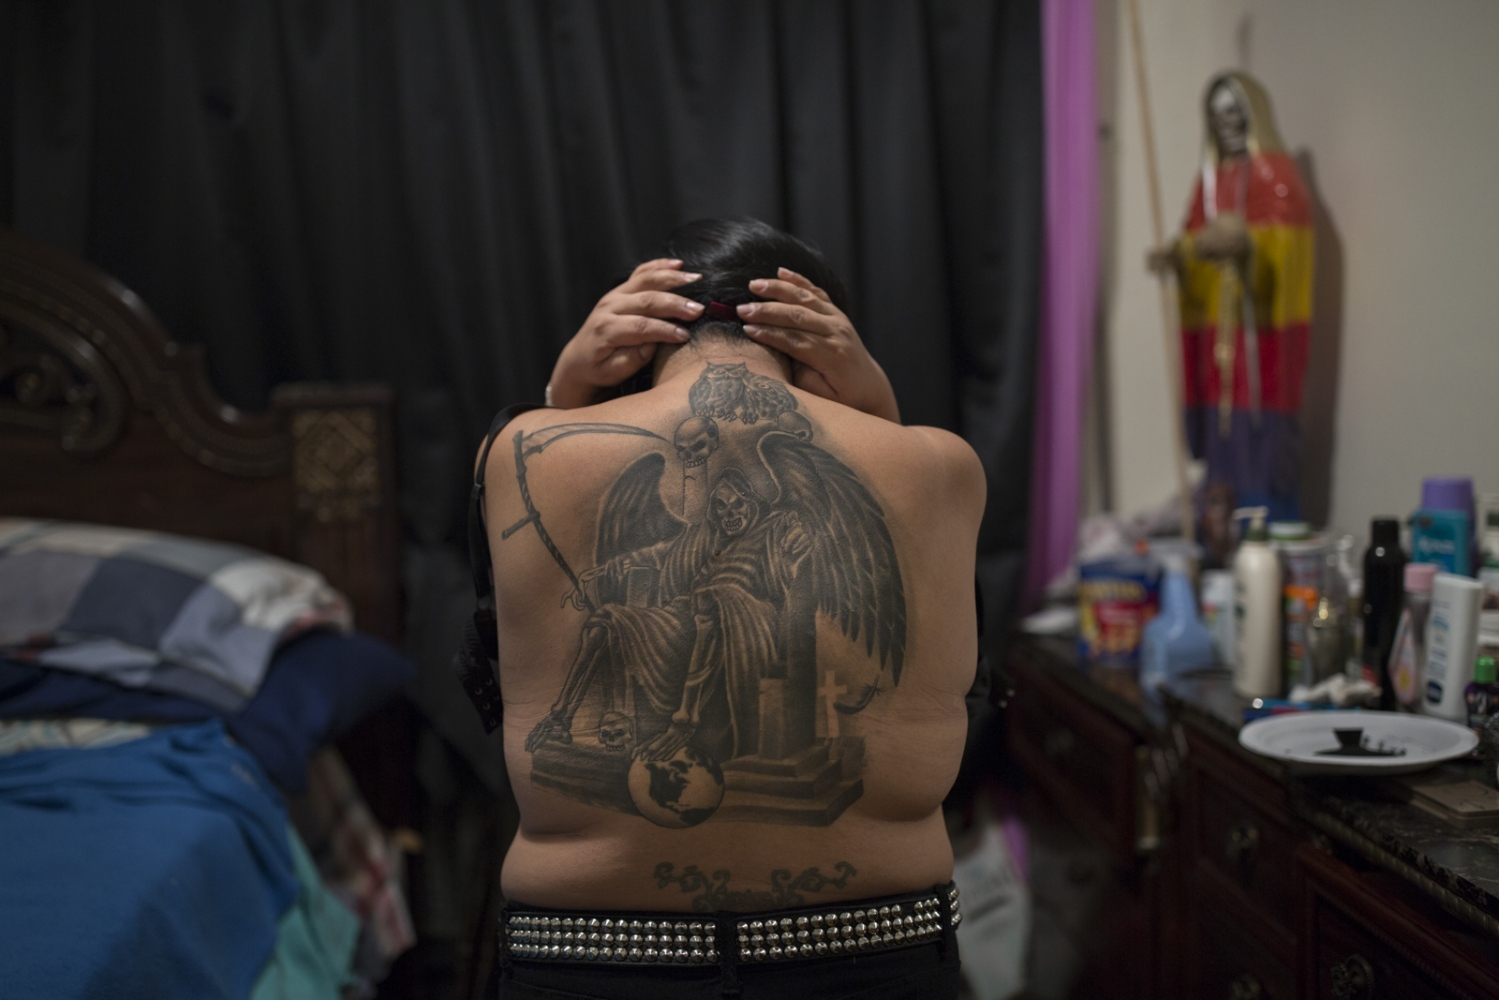 Santa Muerte devotee Rosa Perez shows her unfinished Santa Muerte tattoo. Perez arrived in the U.S. from Mexico 28 years ago and has been a Santa Muerte follower for 10 years.